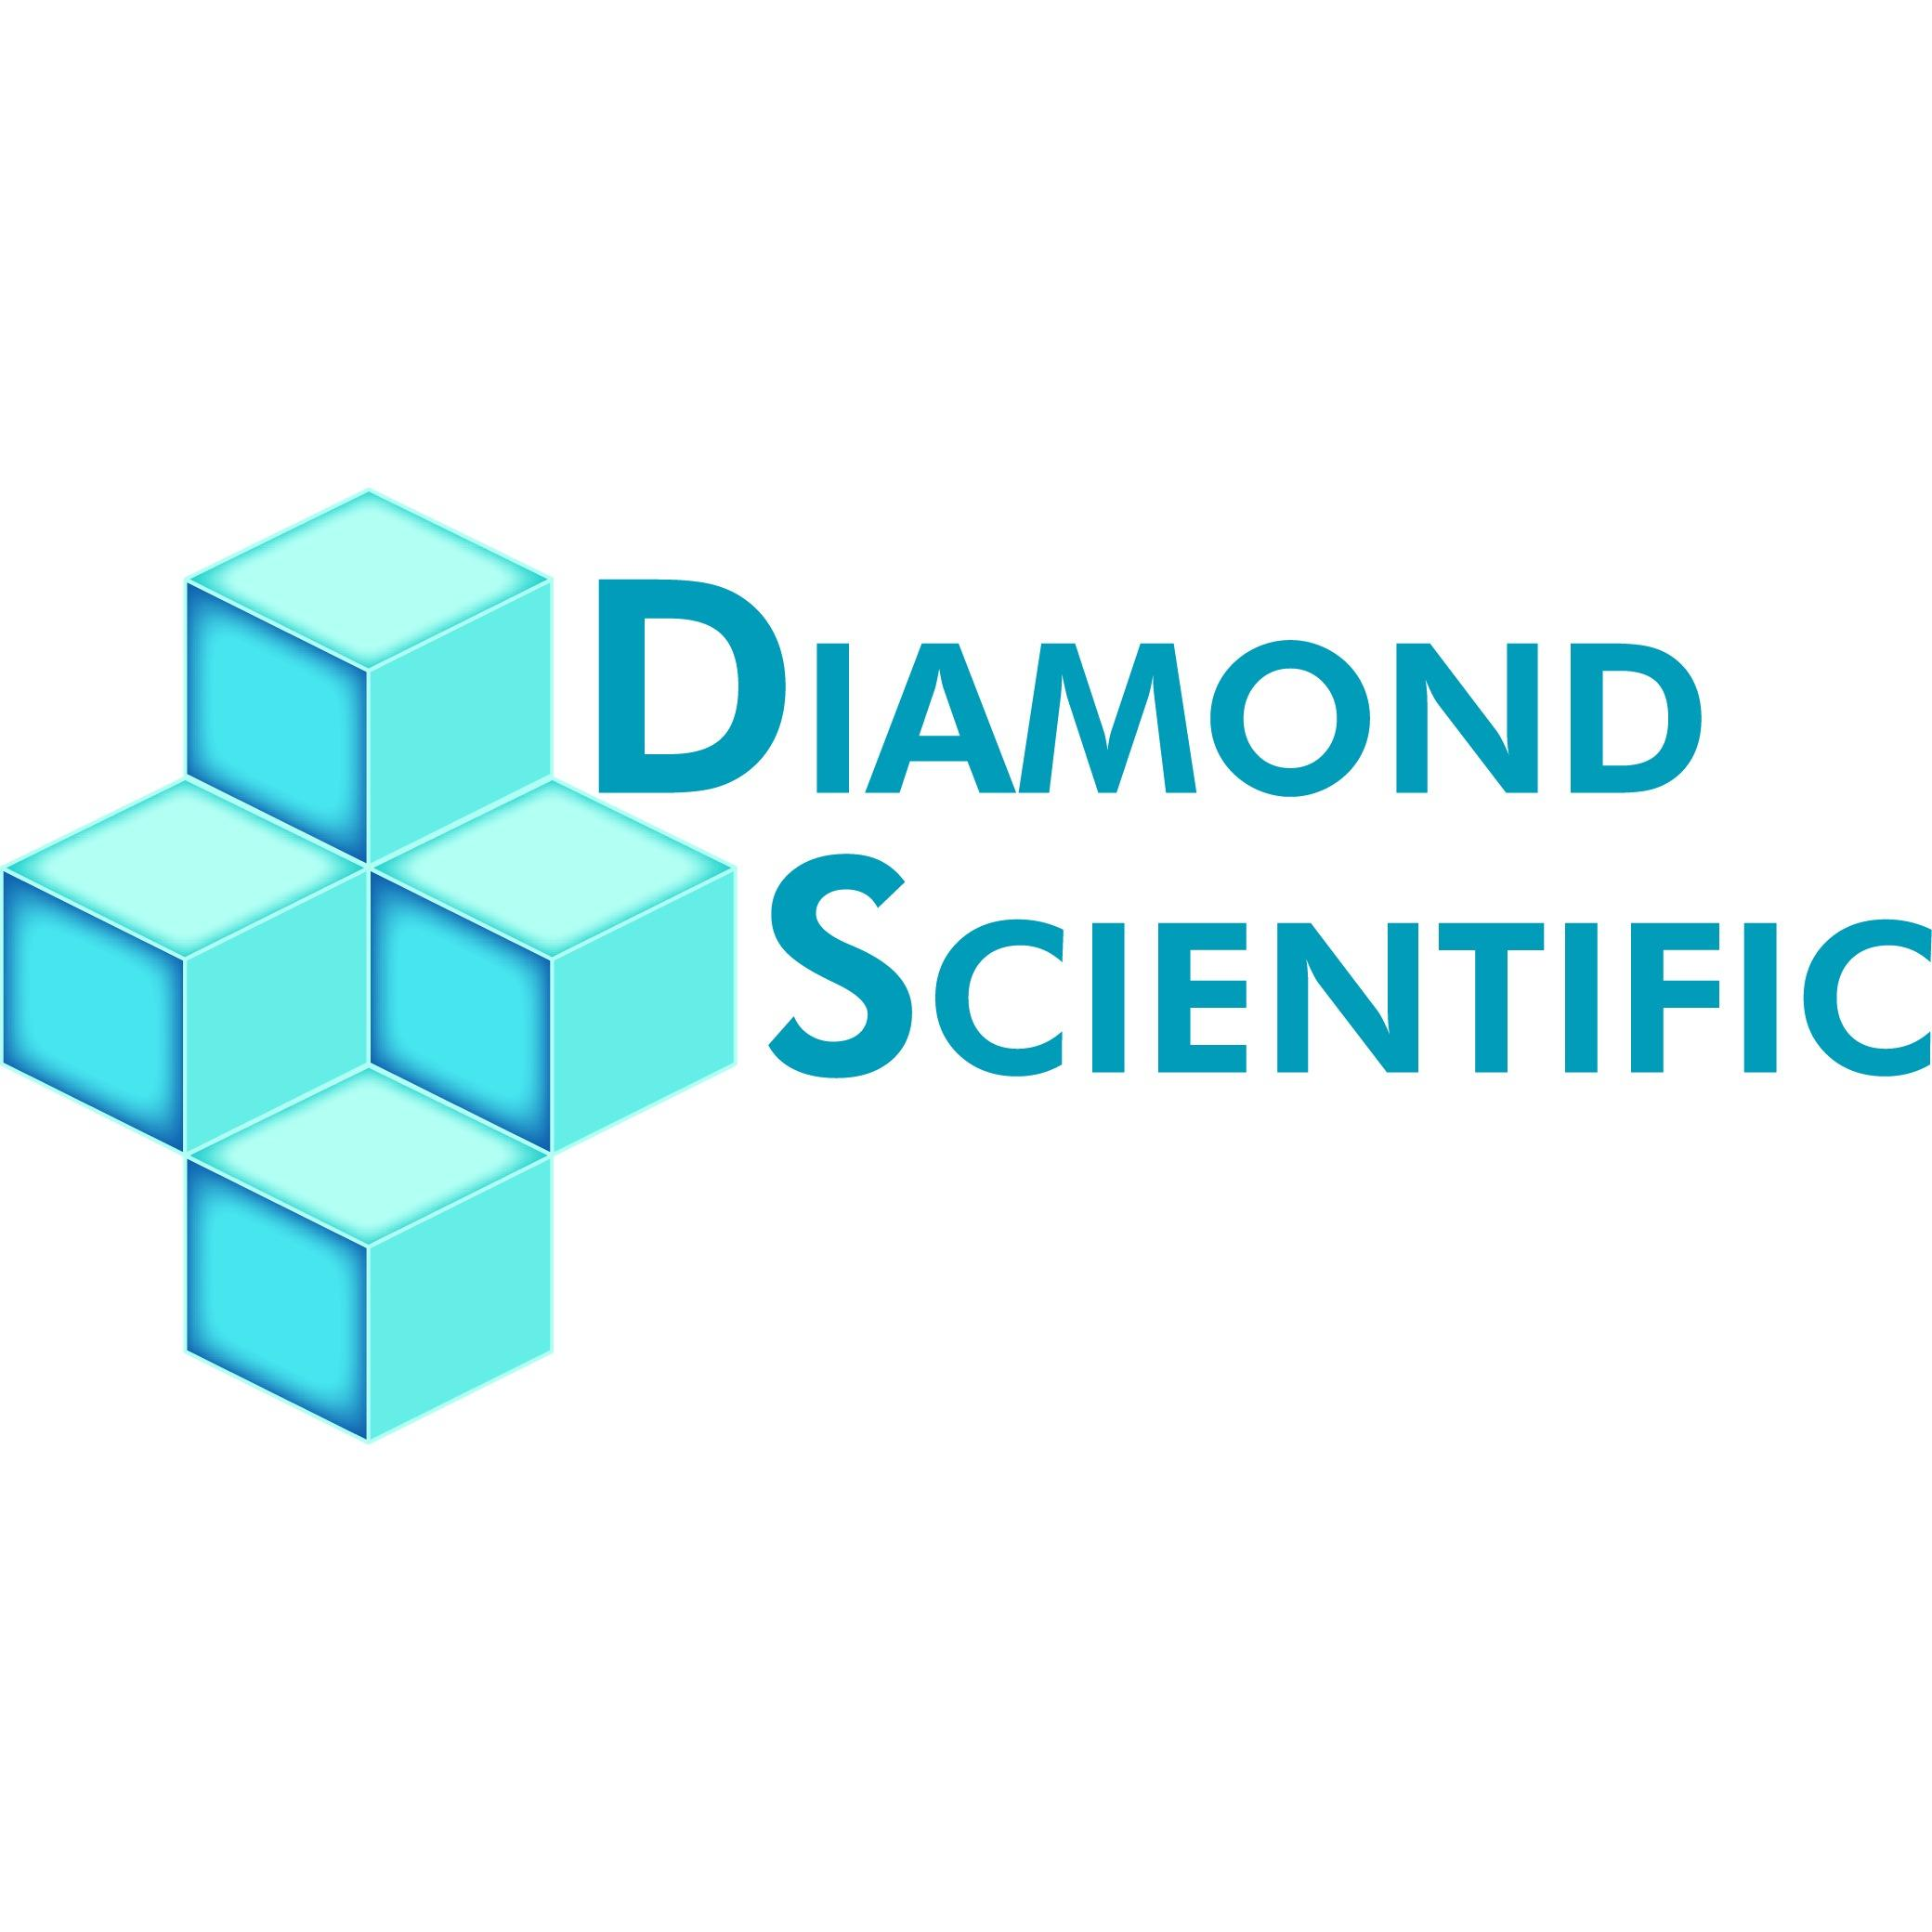 Diamond Scientific